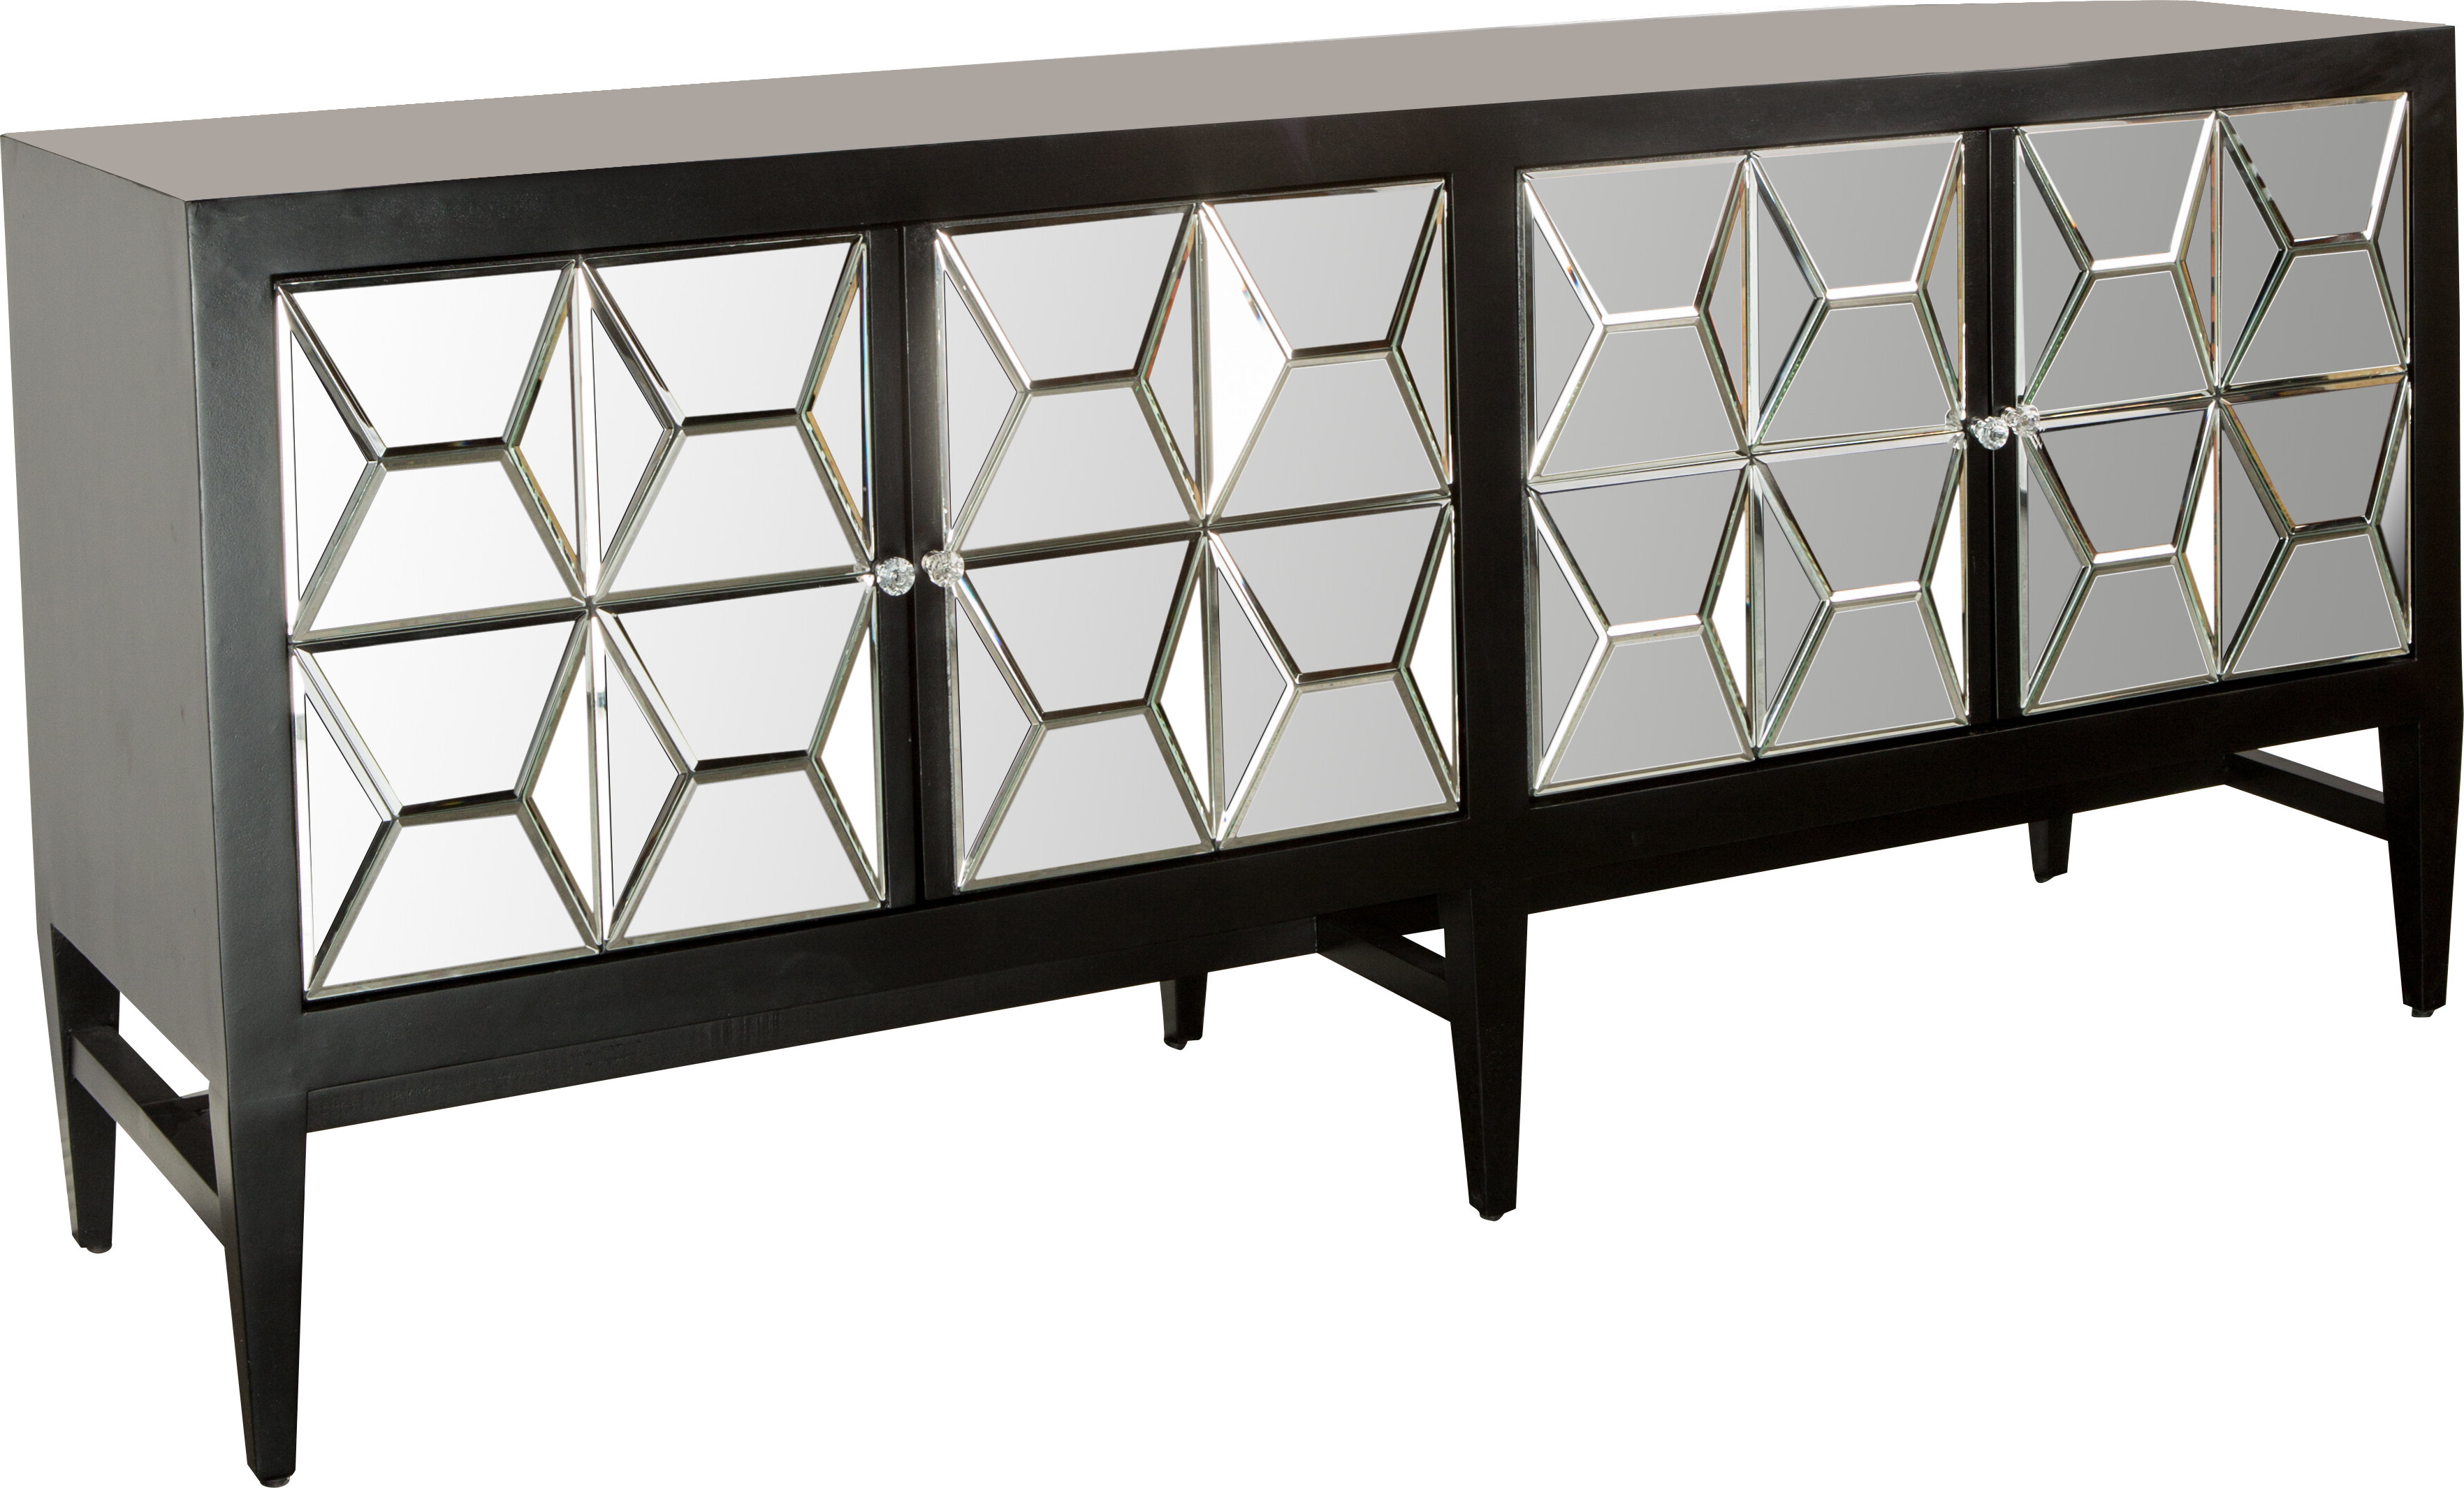 Modern & Contemporary Glass Credenza   Allmodern Throughout Contemporary Three Tier Glass Buffets With Black Metal Frame (View 7 of 20)